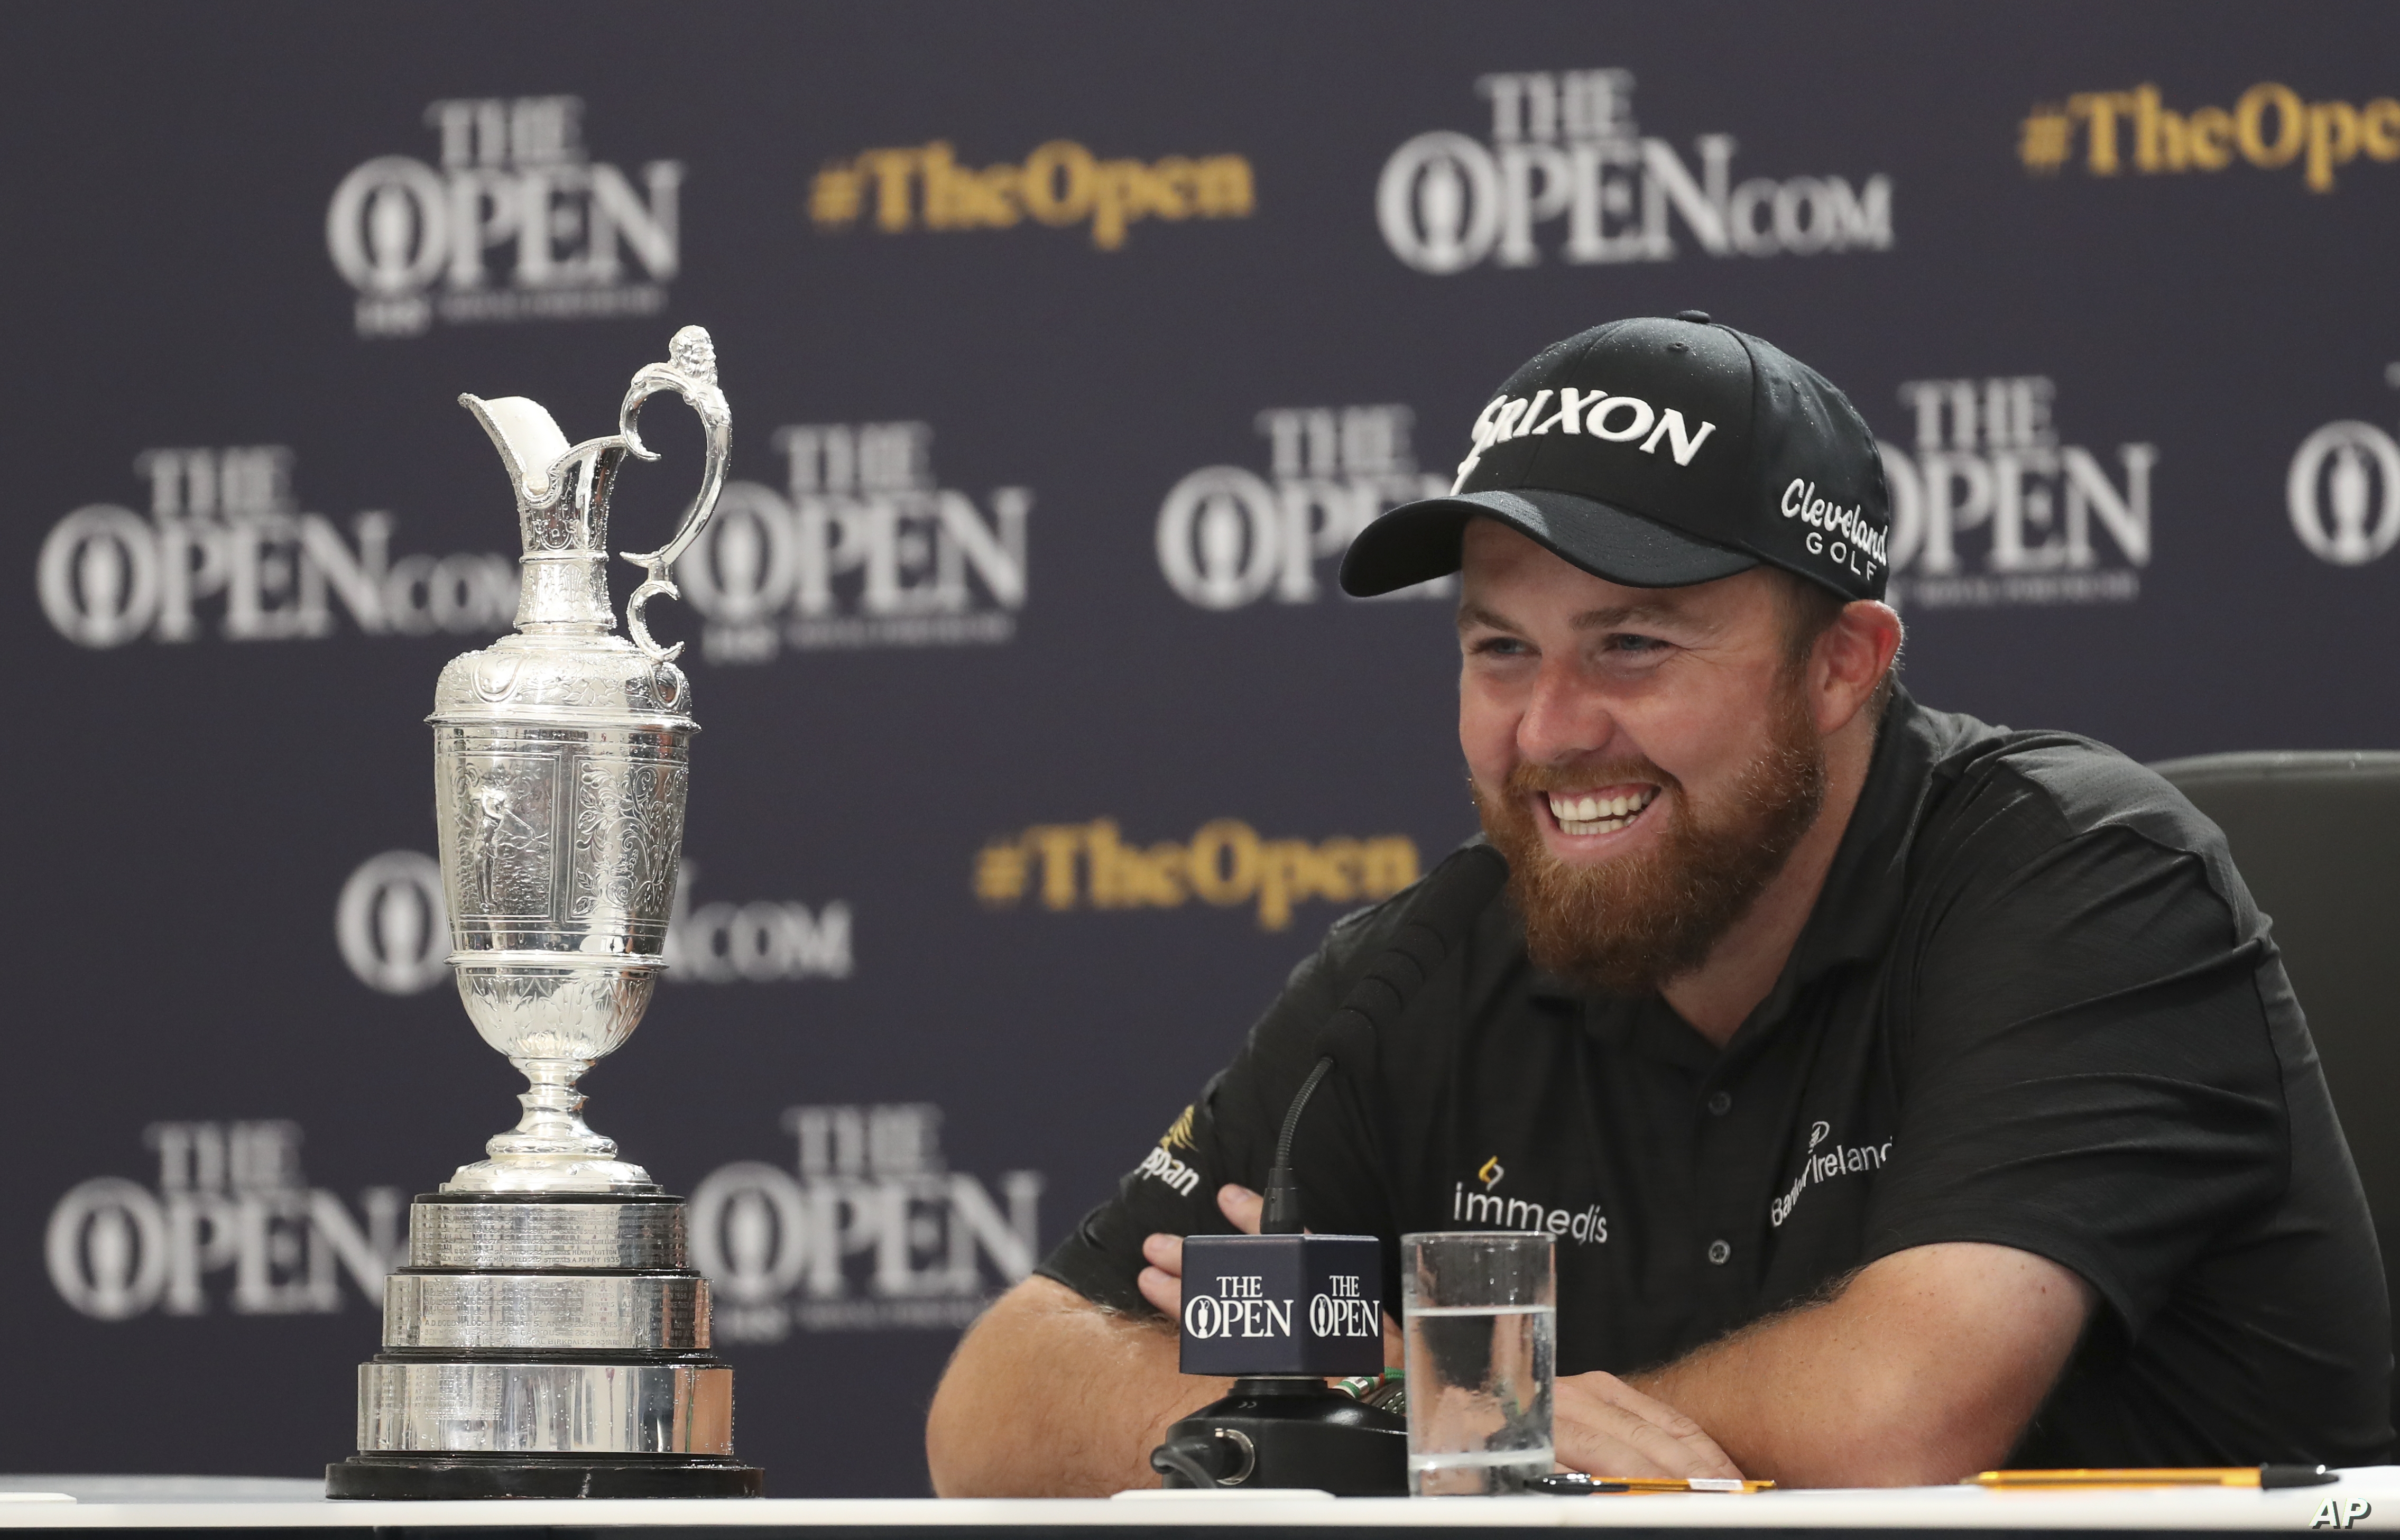 Shane Lowry signs multi-year extension with Srixon / Cleveland Golf